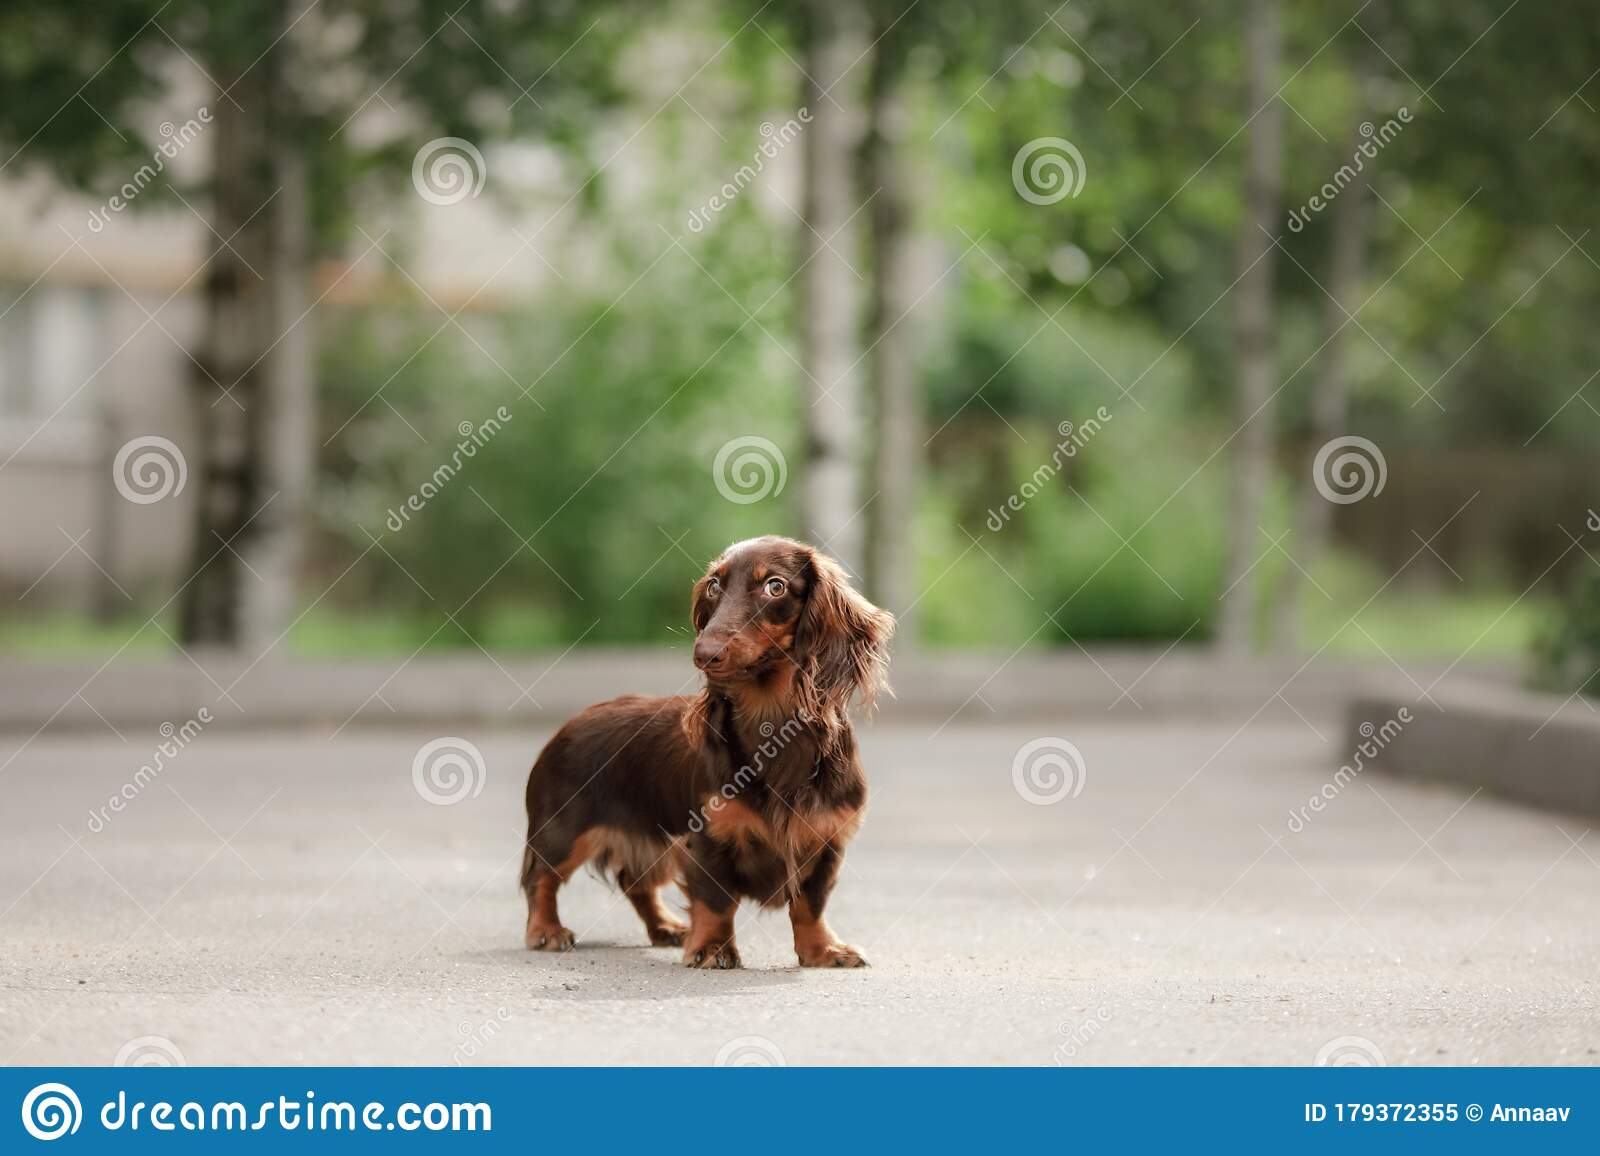 Dog On Nature In The Park Dachshund Puppy Pet For A Walk Stock Image Image Of Outdoors Canine 179372355